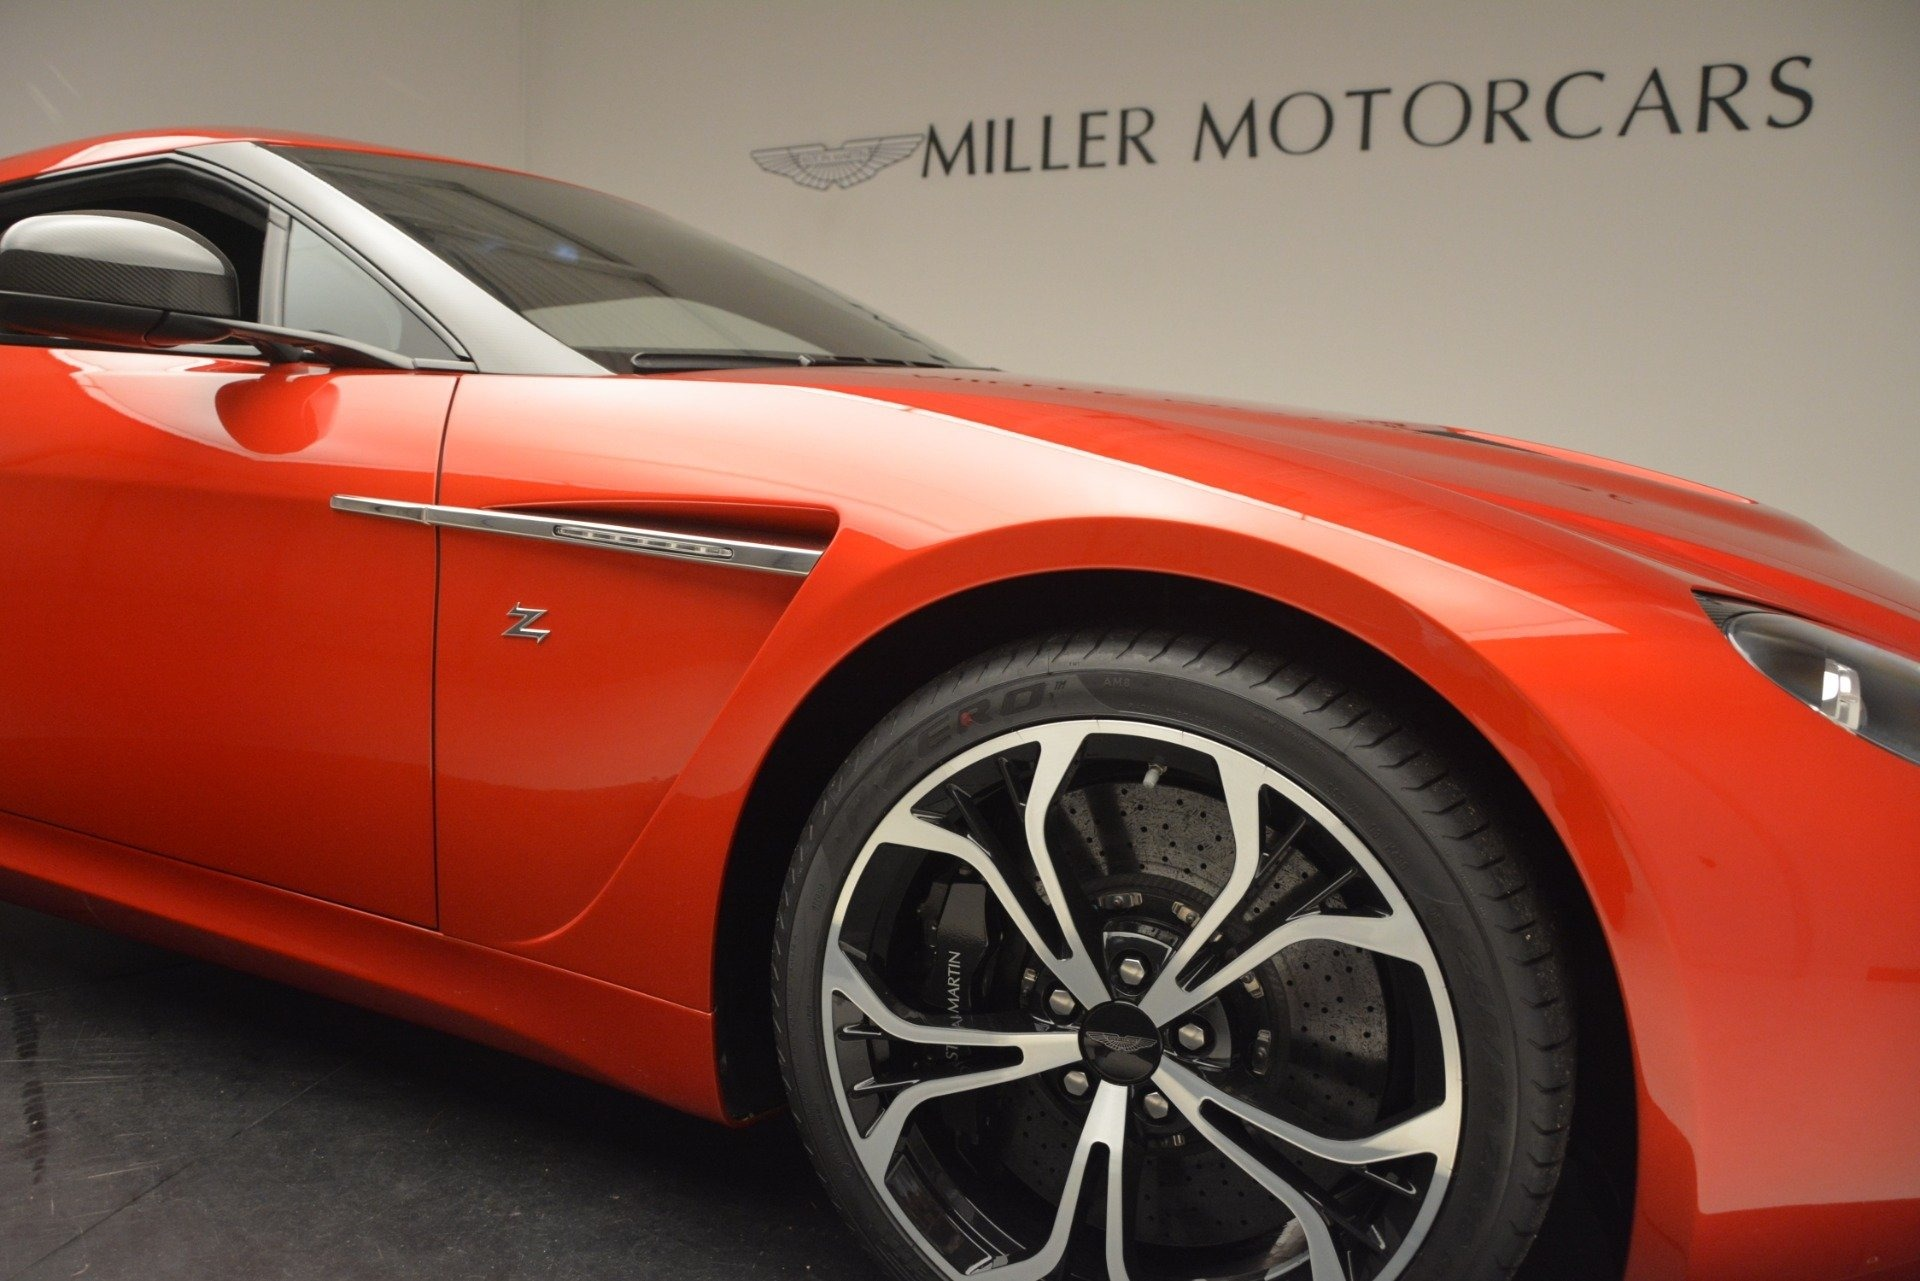 Used 2013 Aston Martin V12 Zagato Coupe For Sale In Greenwich, CT 3181_p22